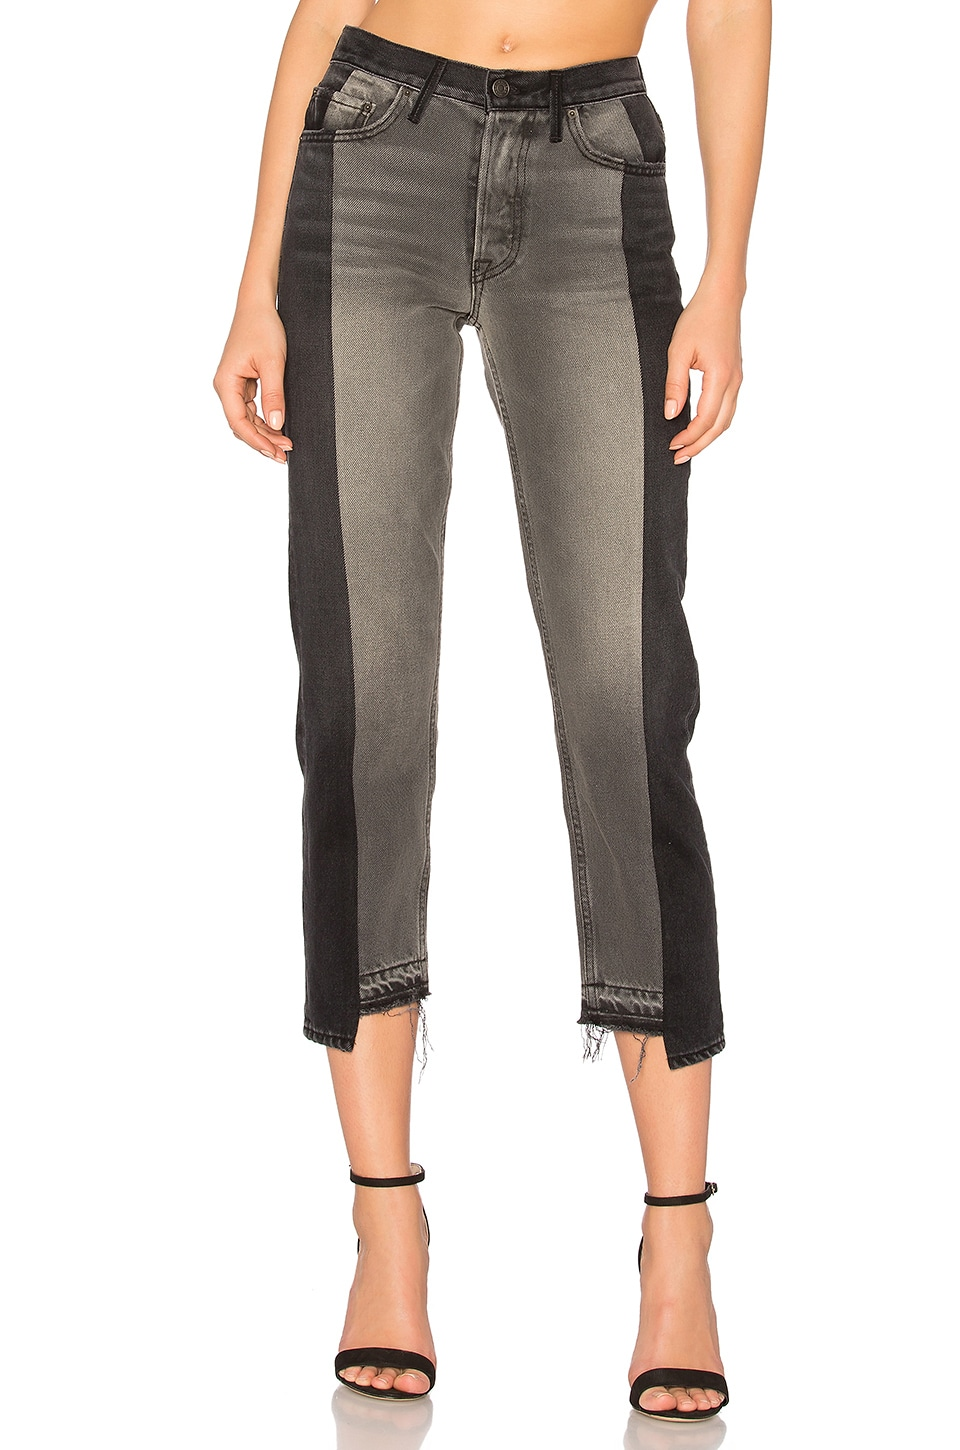 GRLFRND Helena High-Rise Straight Crop Jean in Superstition